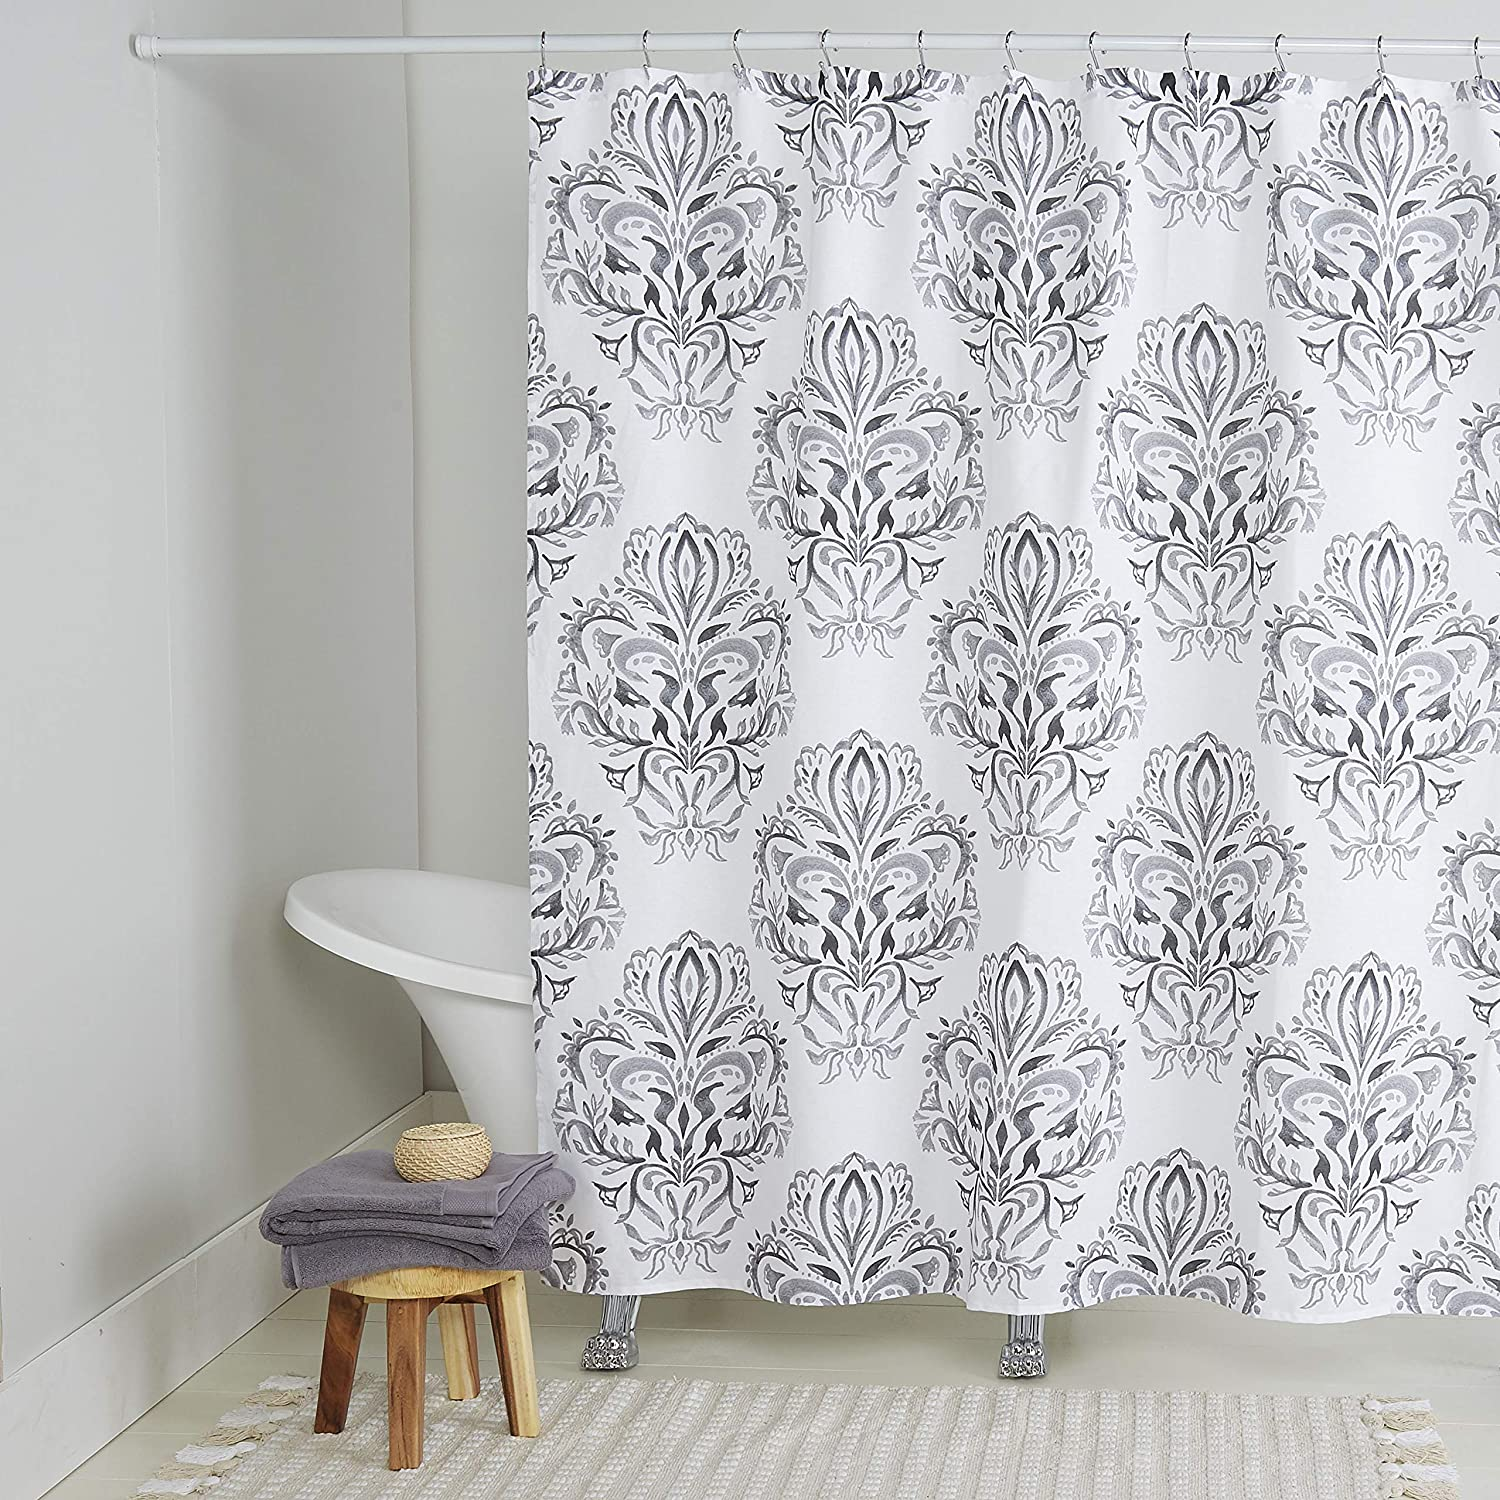 Home Dynamix Nicole Miller Addie Shower Attention brand Easy-to-use Cotton 100% Curtain 72